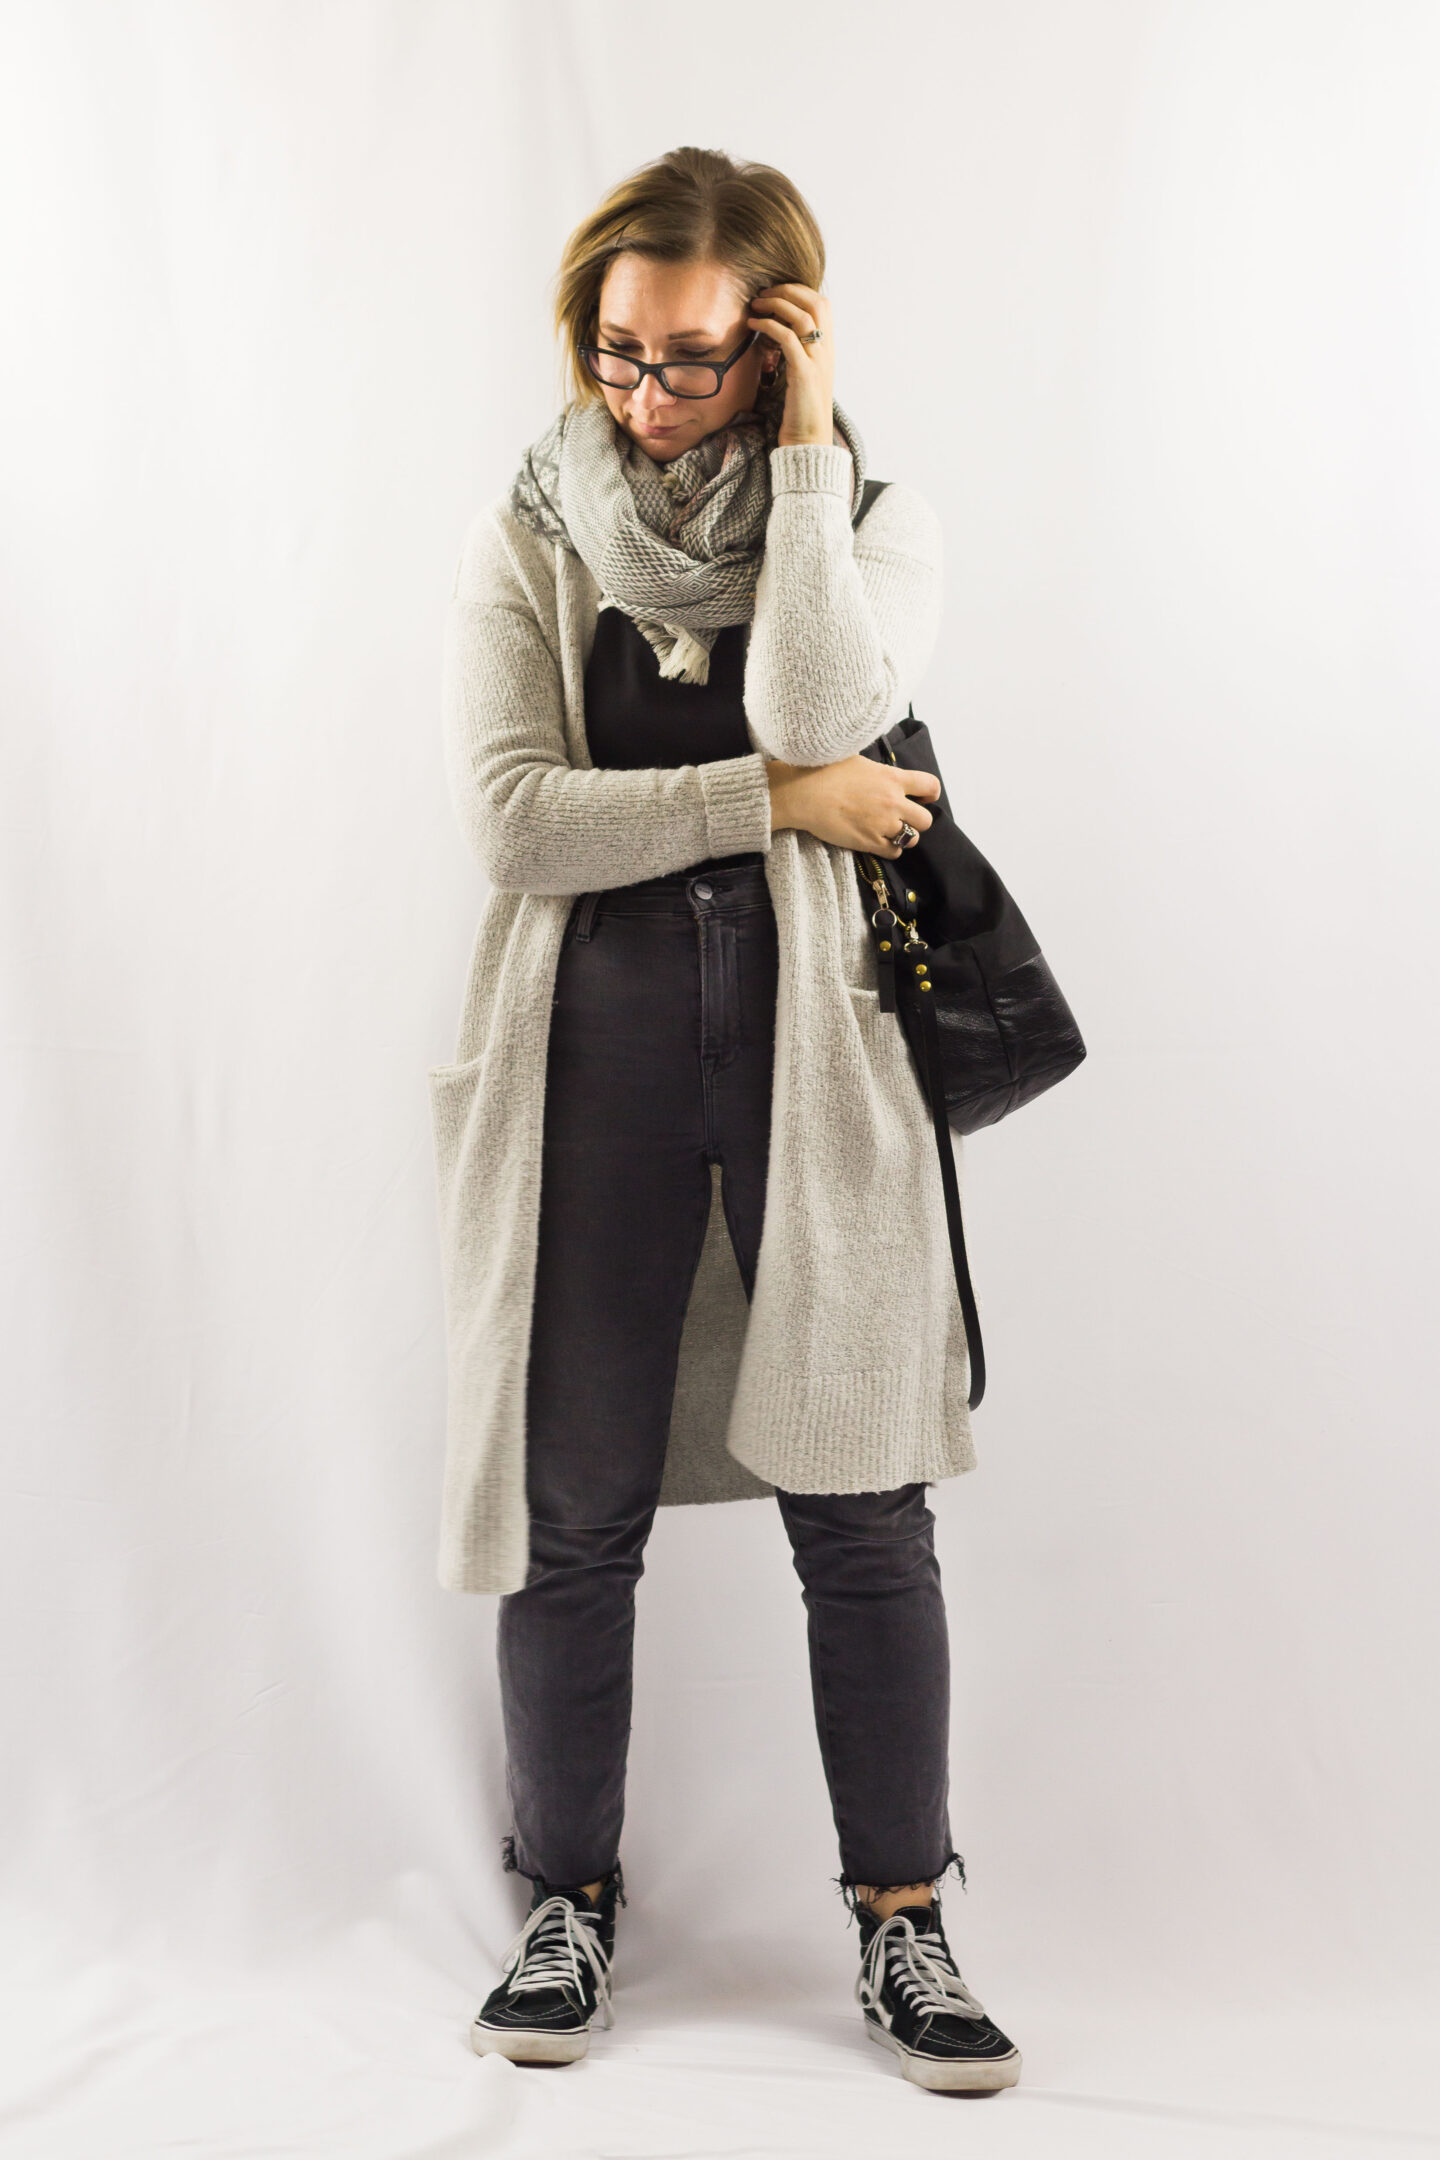 Winter Capsule Outfit No. 40: ethicalmyway